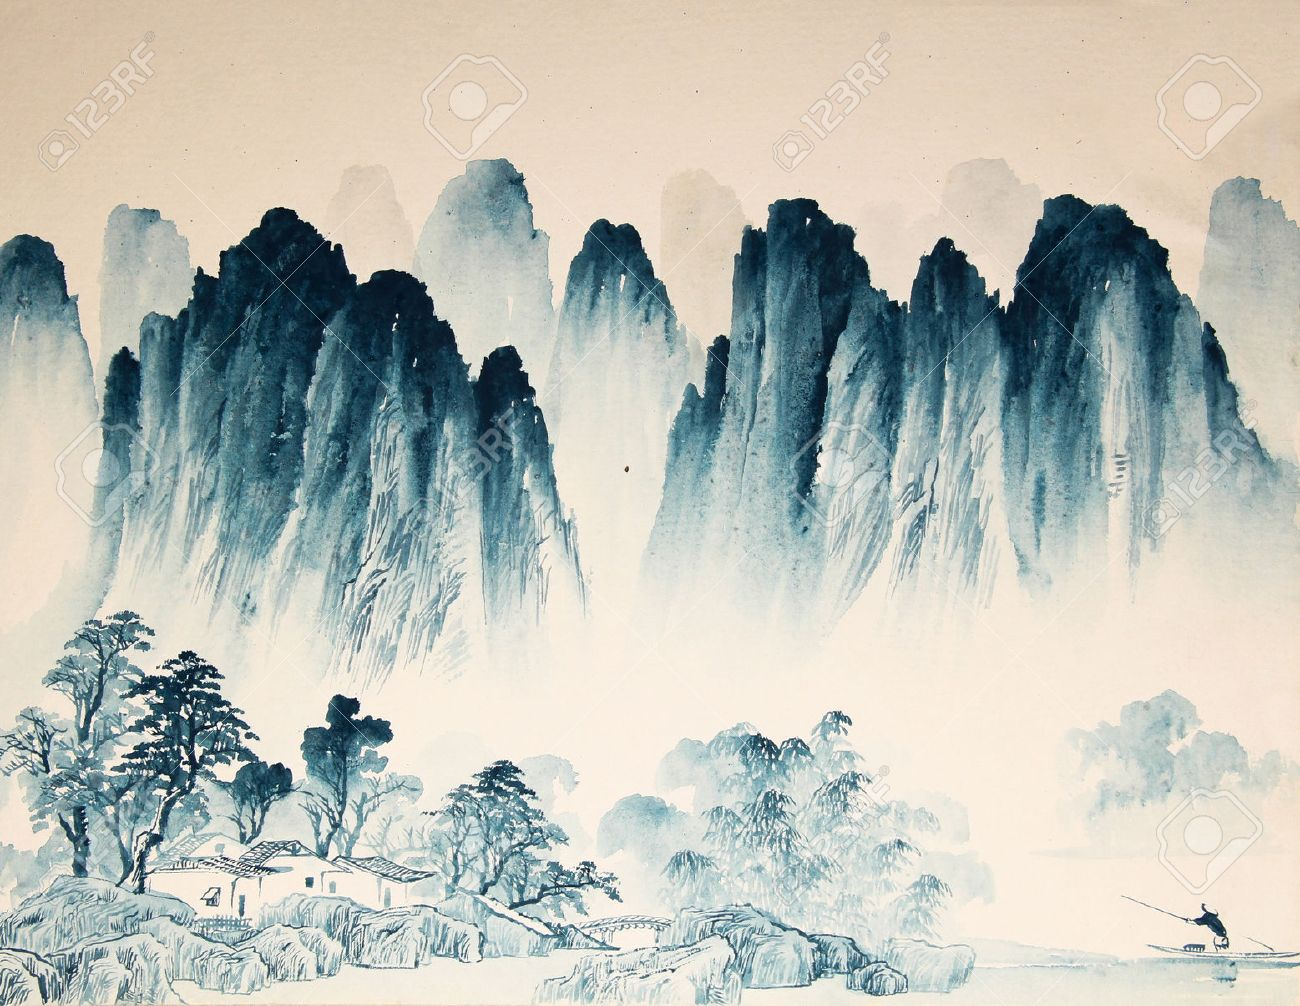 Chinese landscape watercolor painting - 55873666